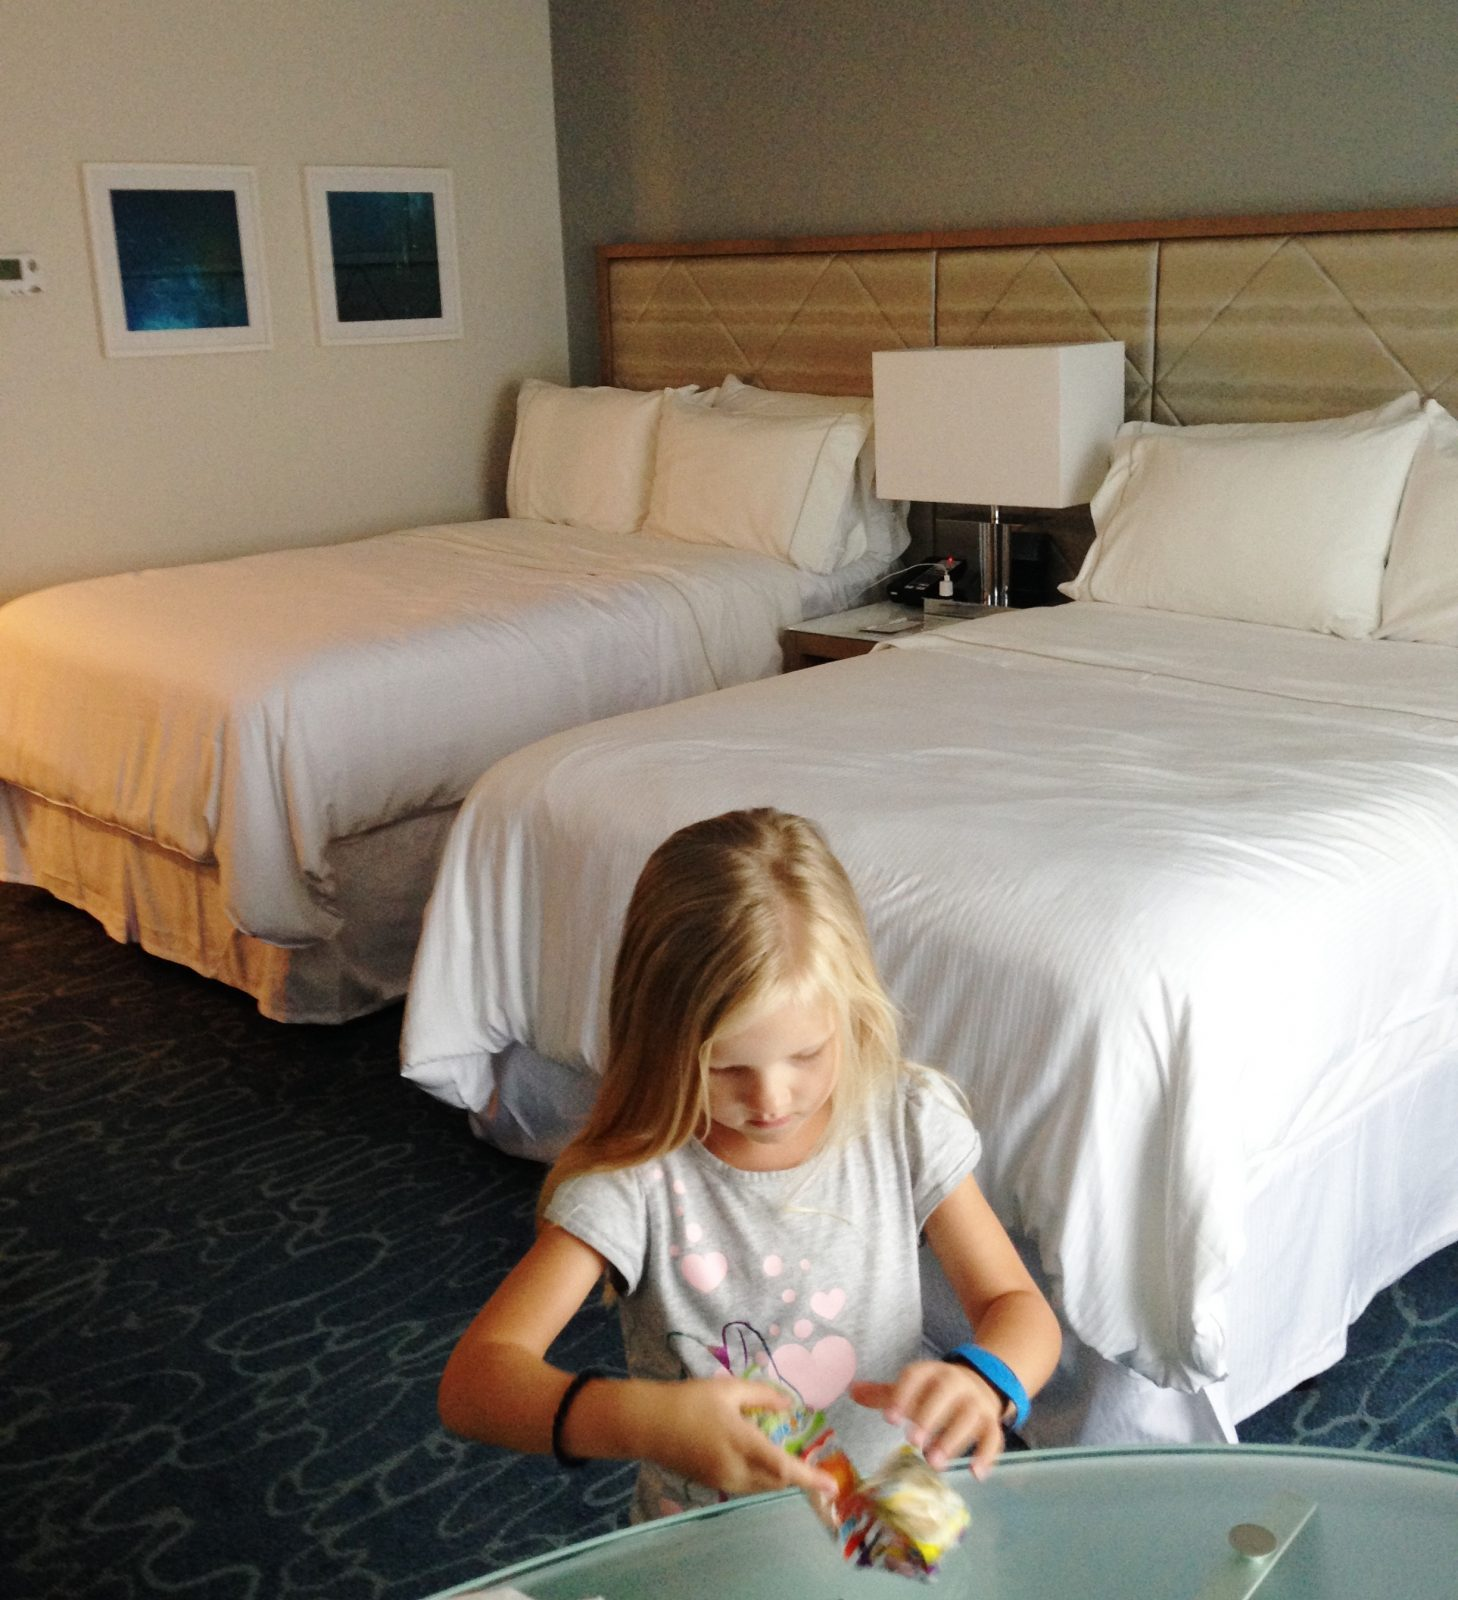 Disney Dolphin Resort Review: Pros & Cons - The Frugal South